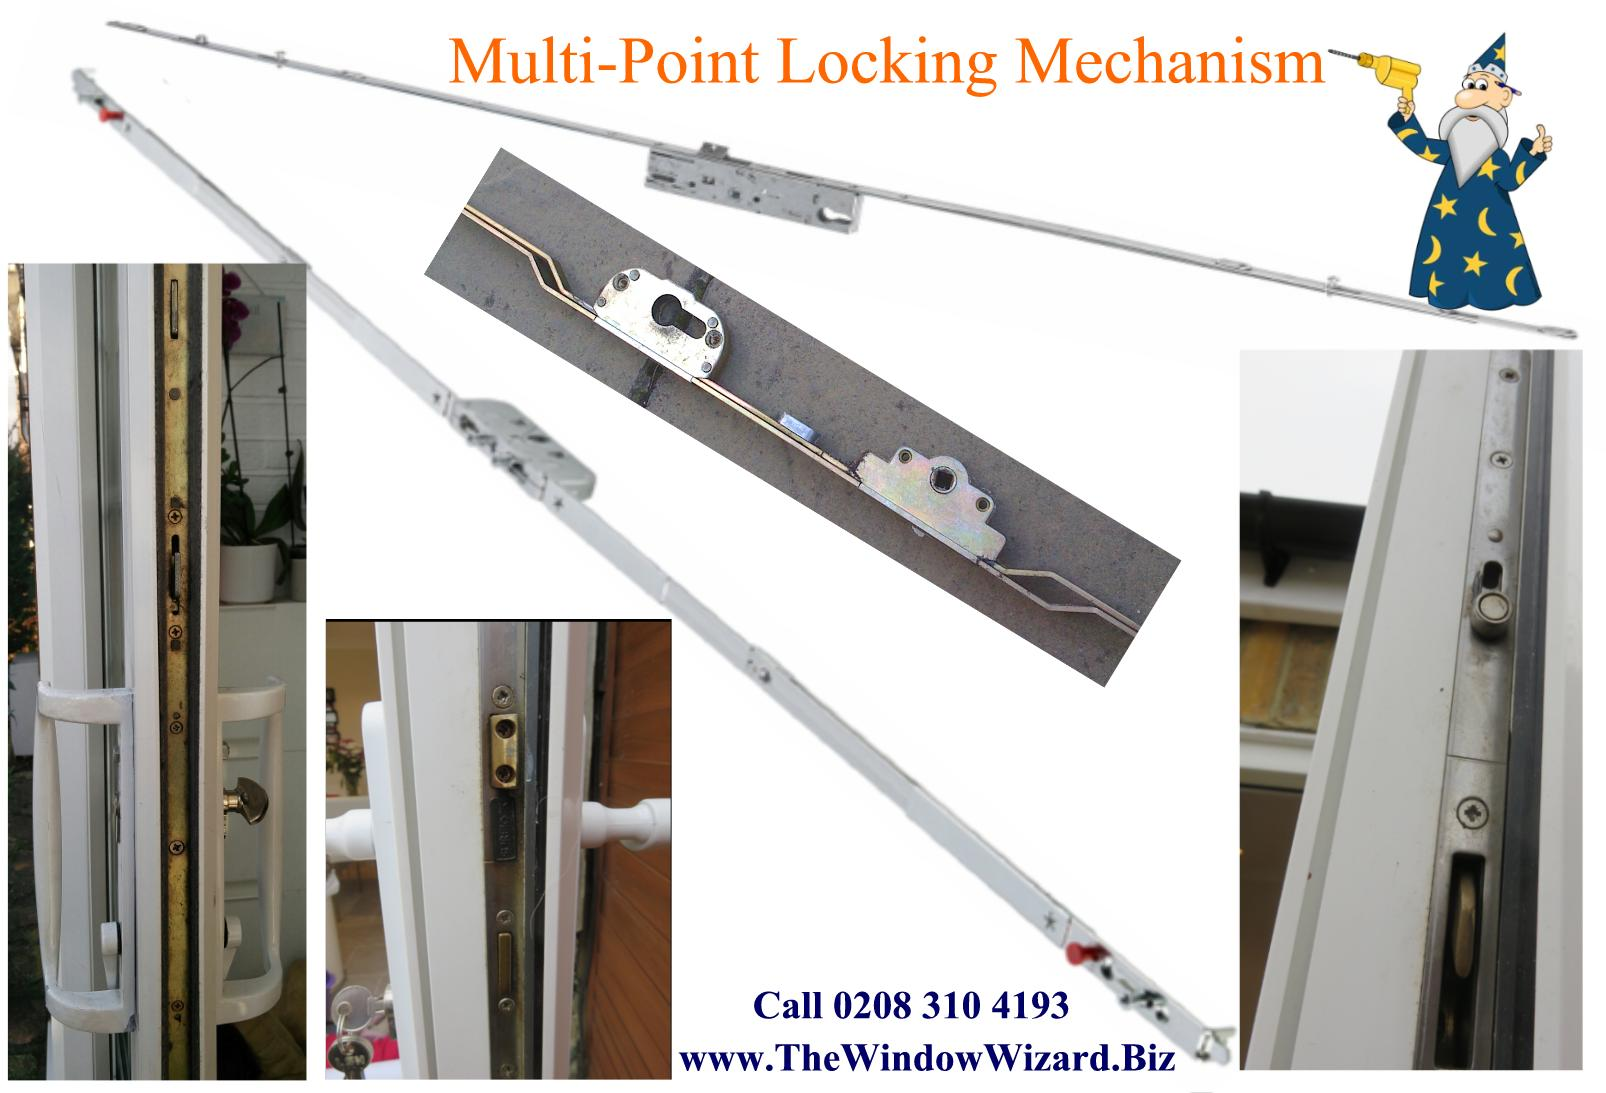 UPVC Multi Point Locking Mechanism supplied and fitted